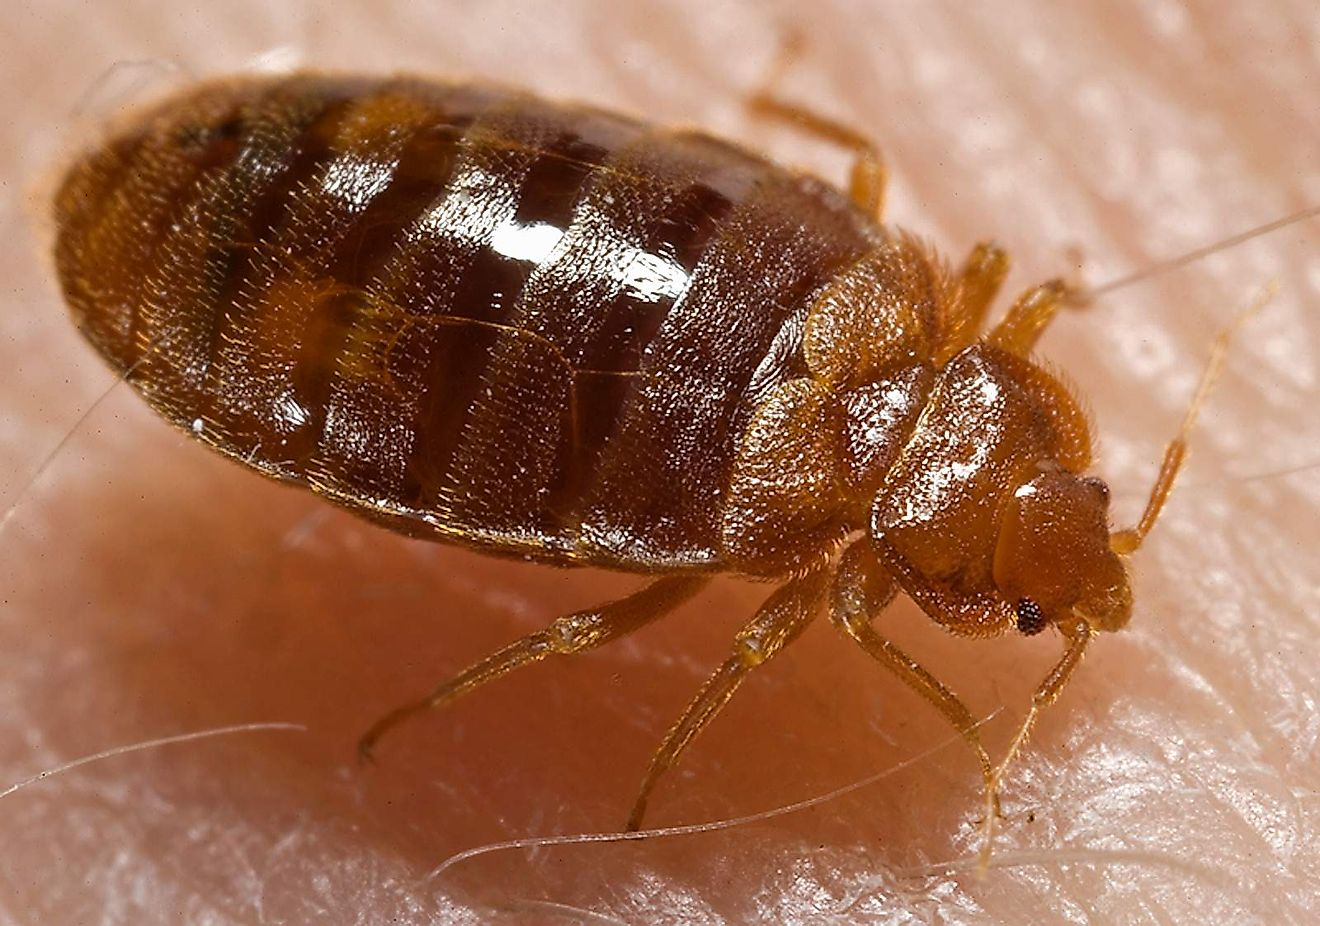 An adult bed bug (Cimex lectularius) with the typical flattened oval shape